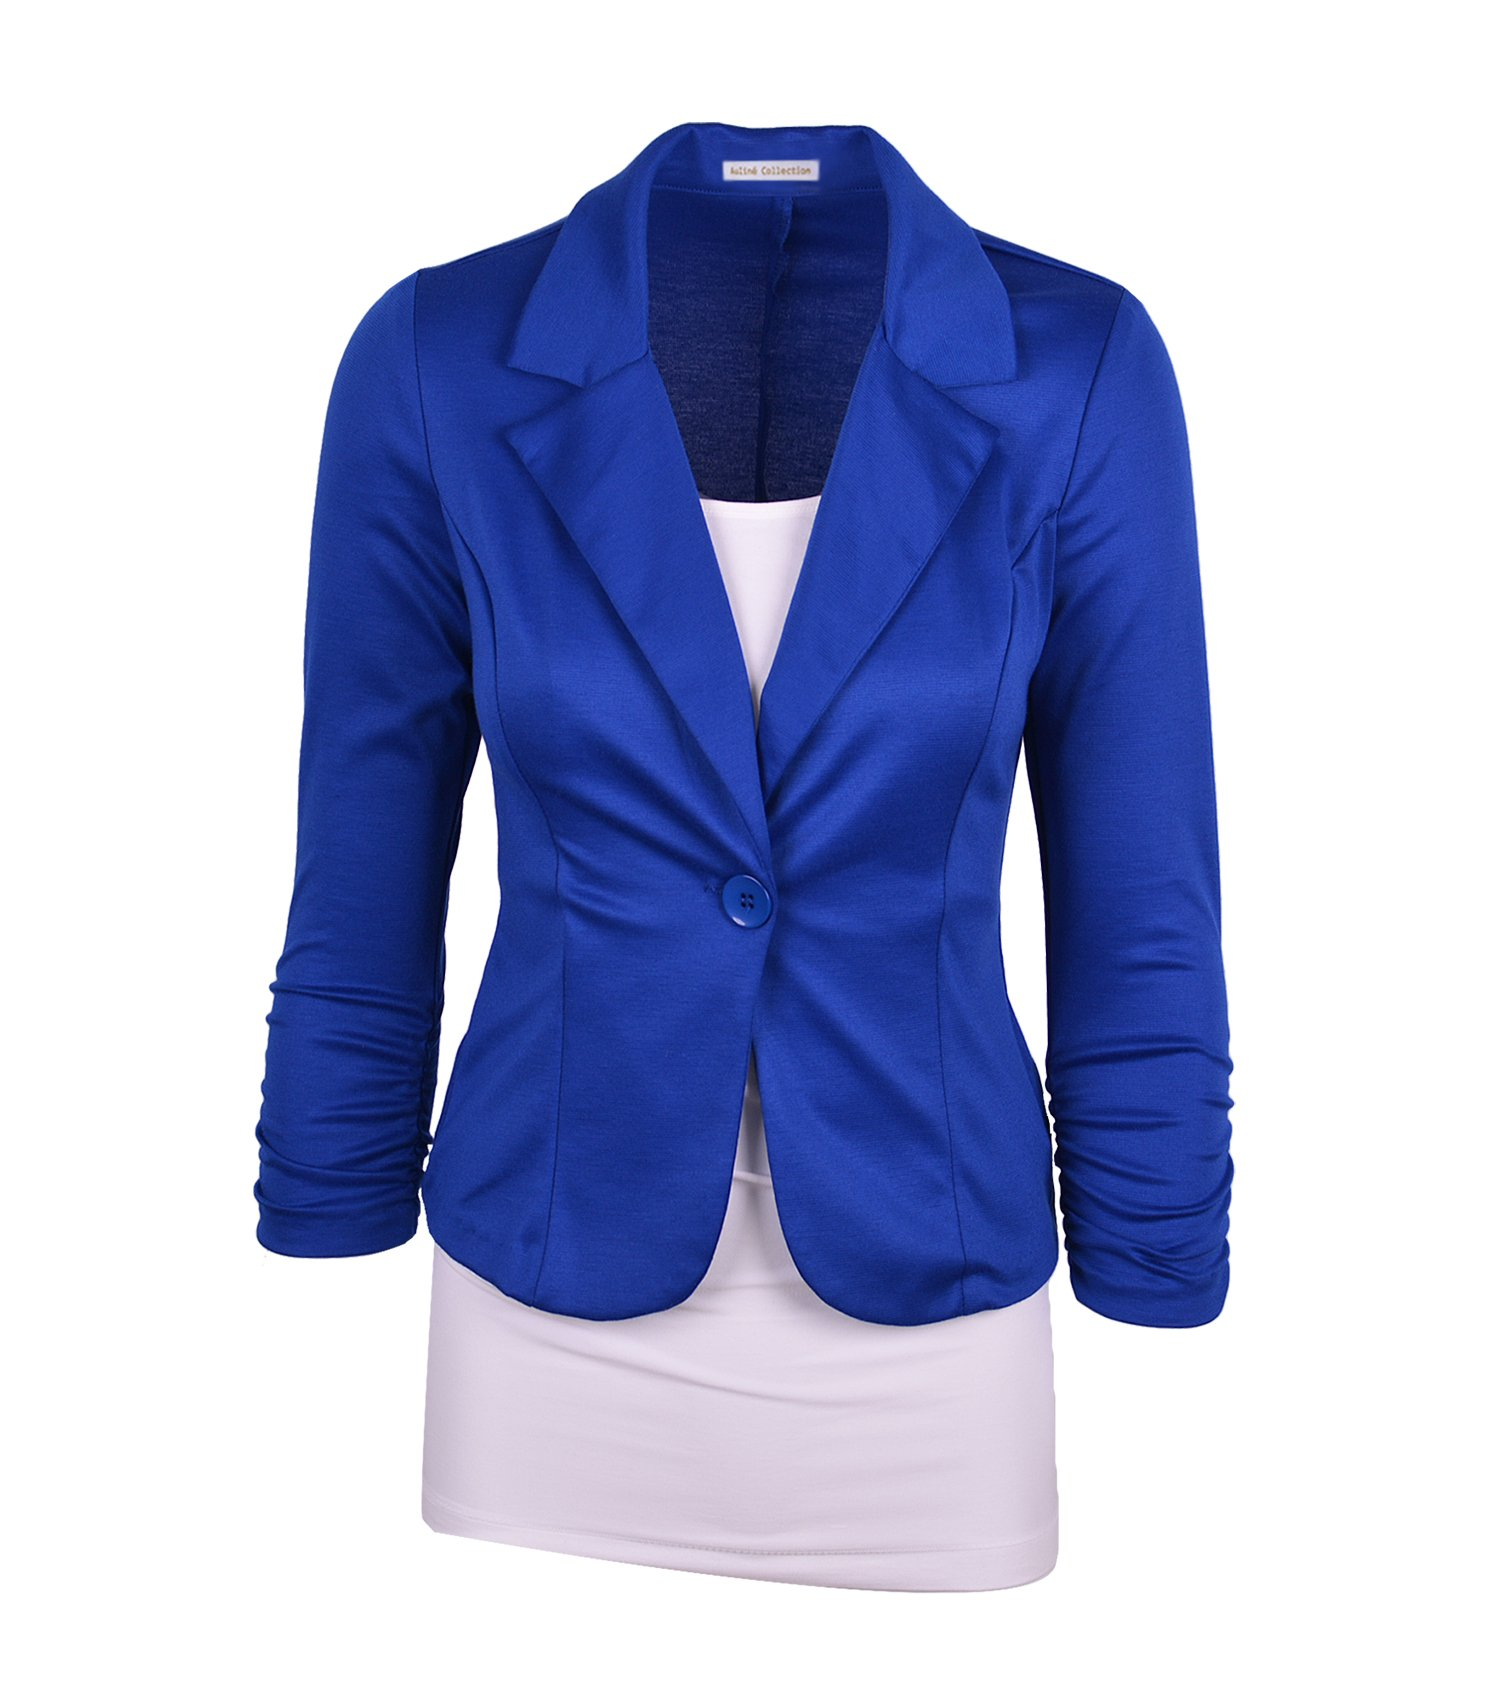 Auliné Collection Women's Casual Work Solid Color Knit Blazer Royal Blue 3X